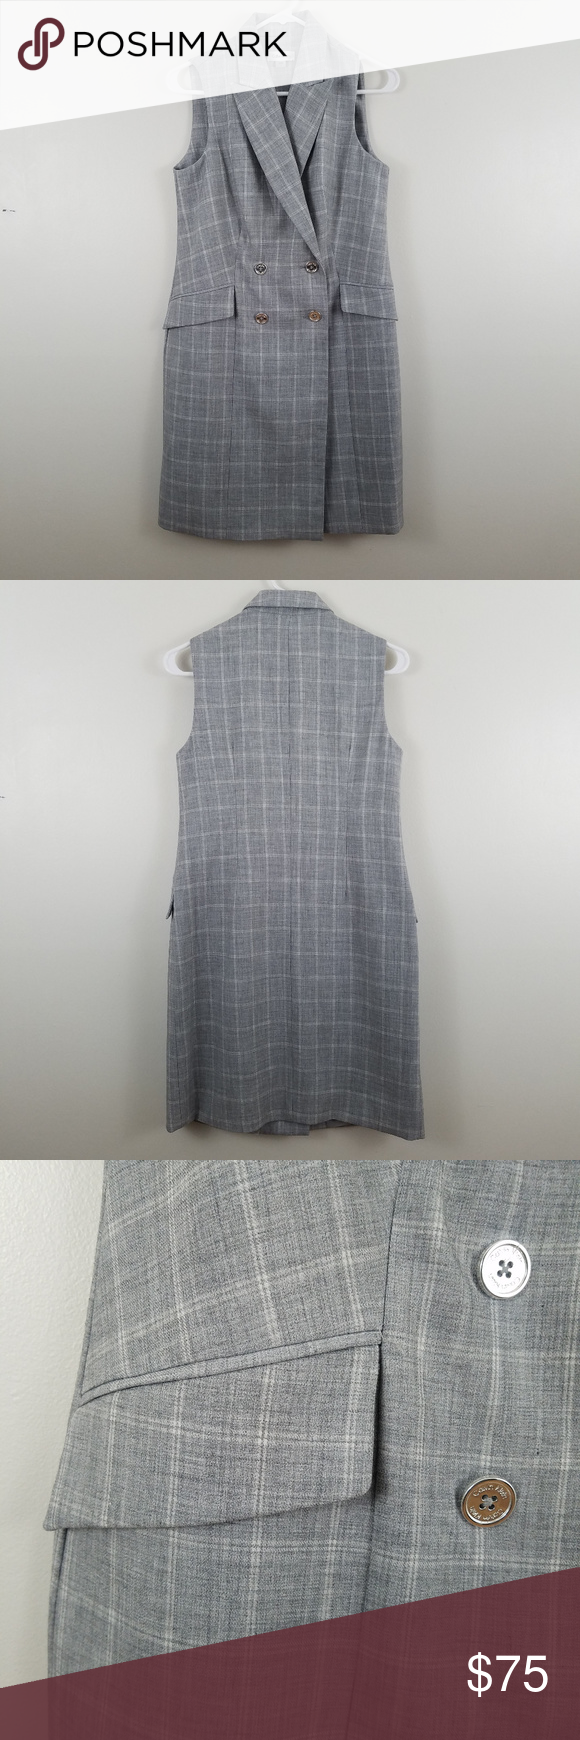 66d3e3994307e Calvin Klein Plaid Double Breasted Blazer Dress 87% polyester, 8% rayon, 5%  spandex 100% polyester lining 35